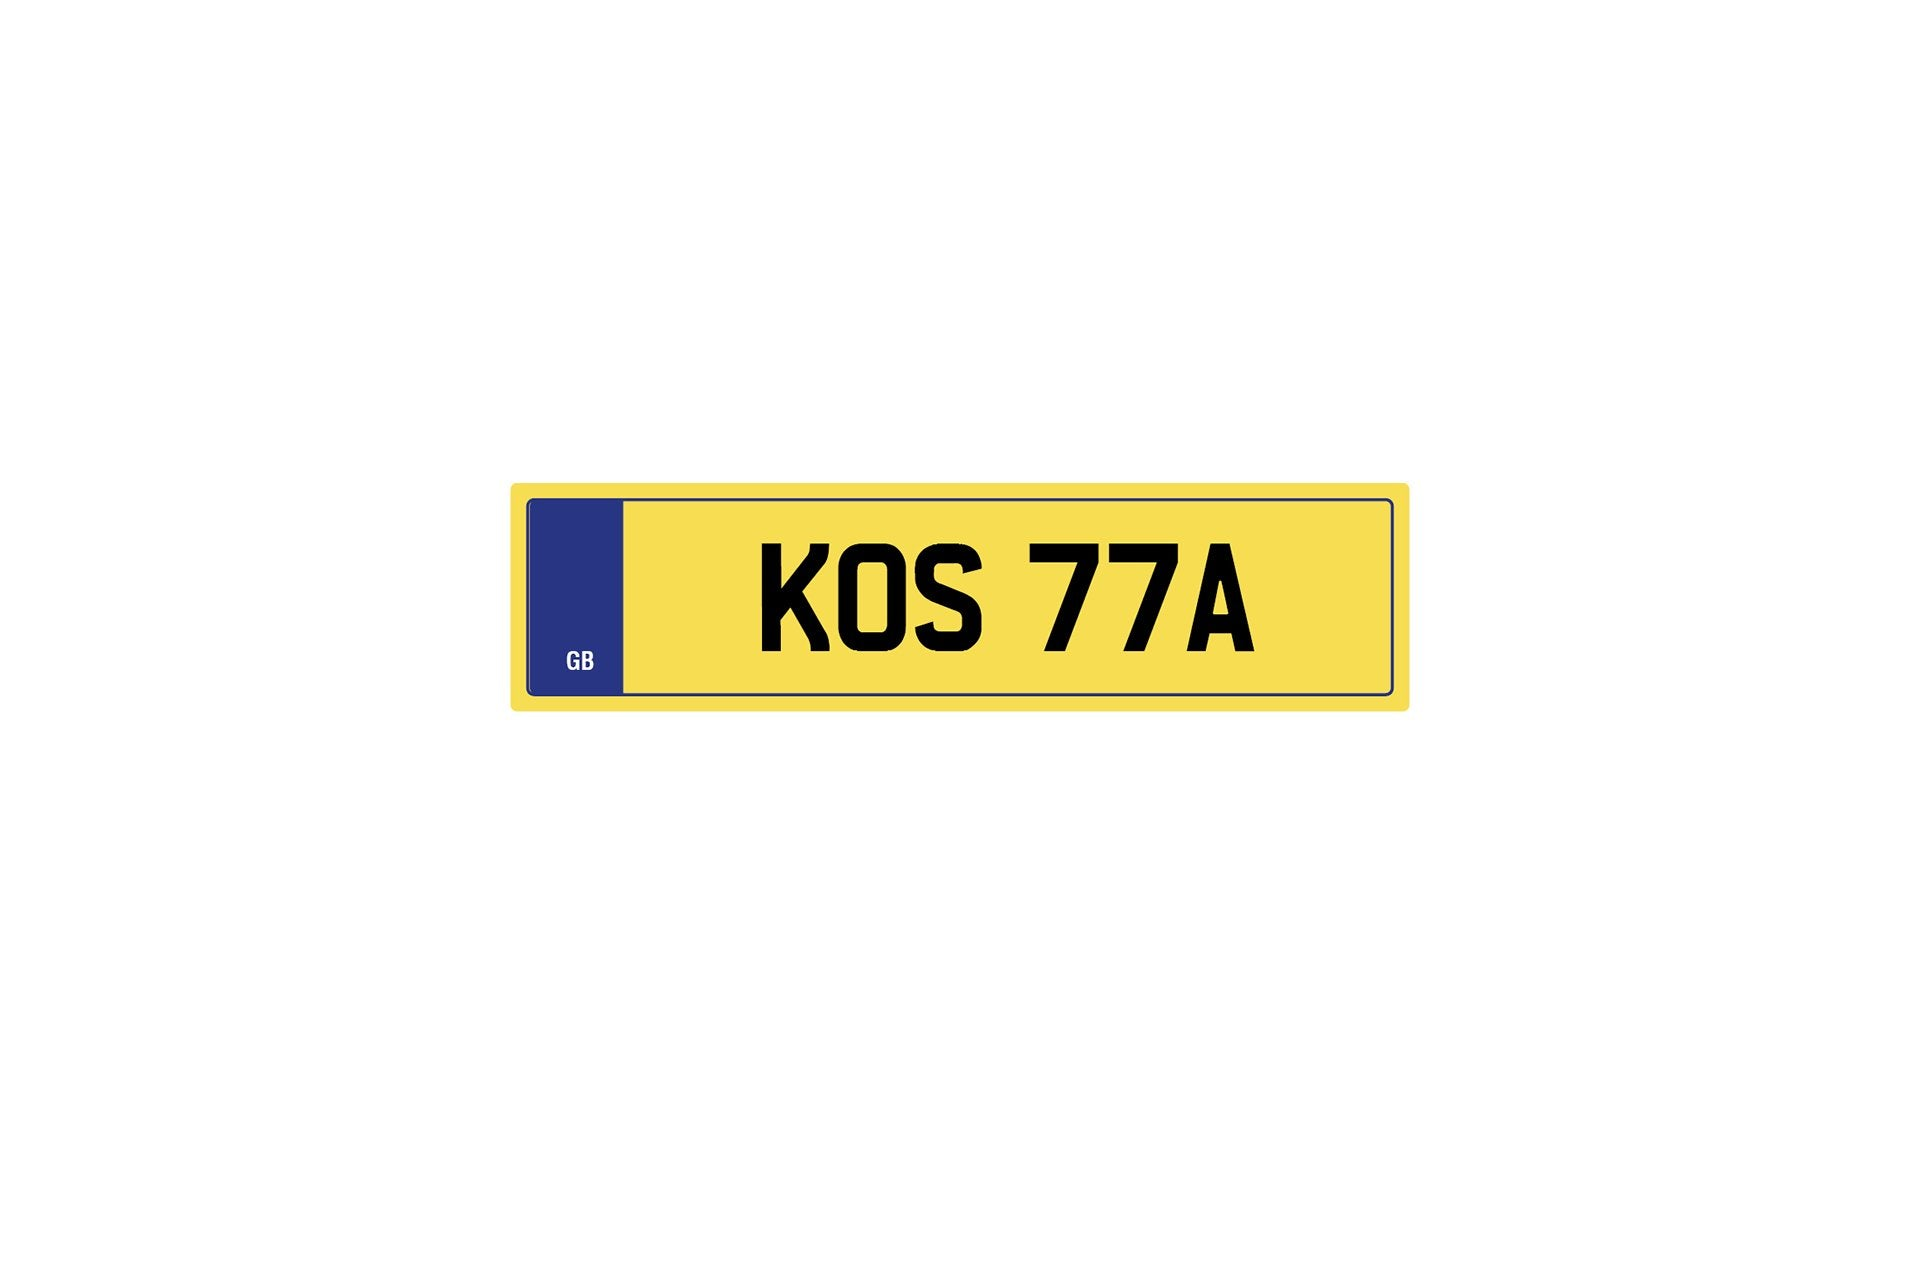 Private Plate Kos 77A by Kahn - Image 211